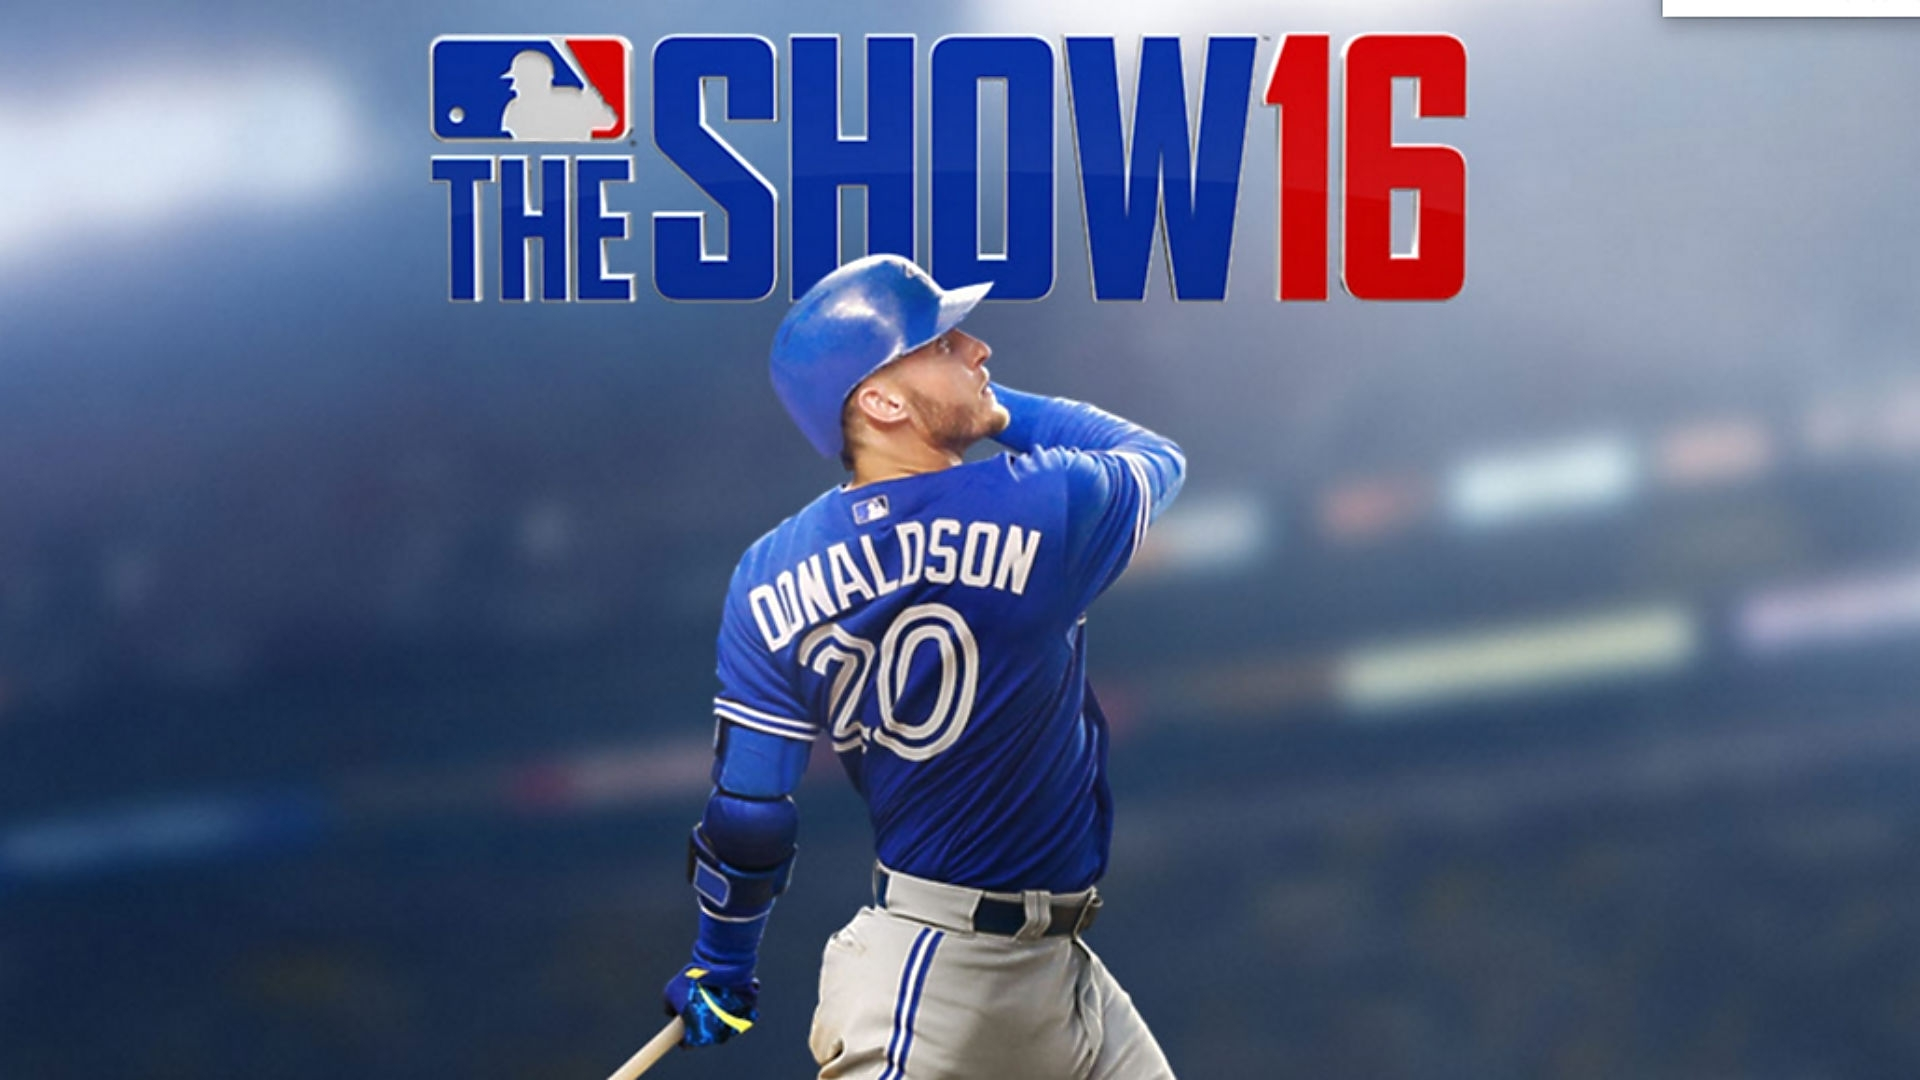 Top 100 Video Games - mlb the show